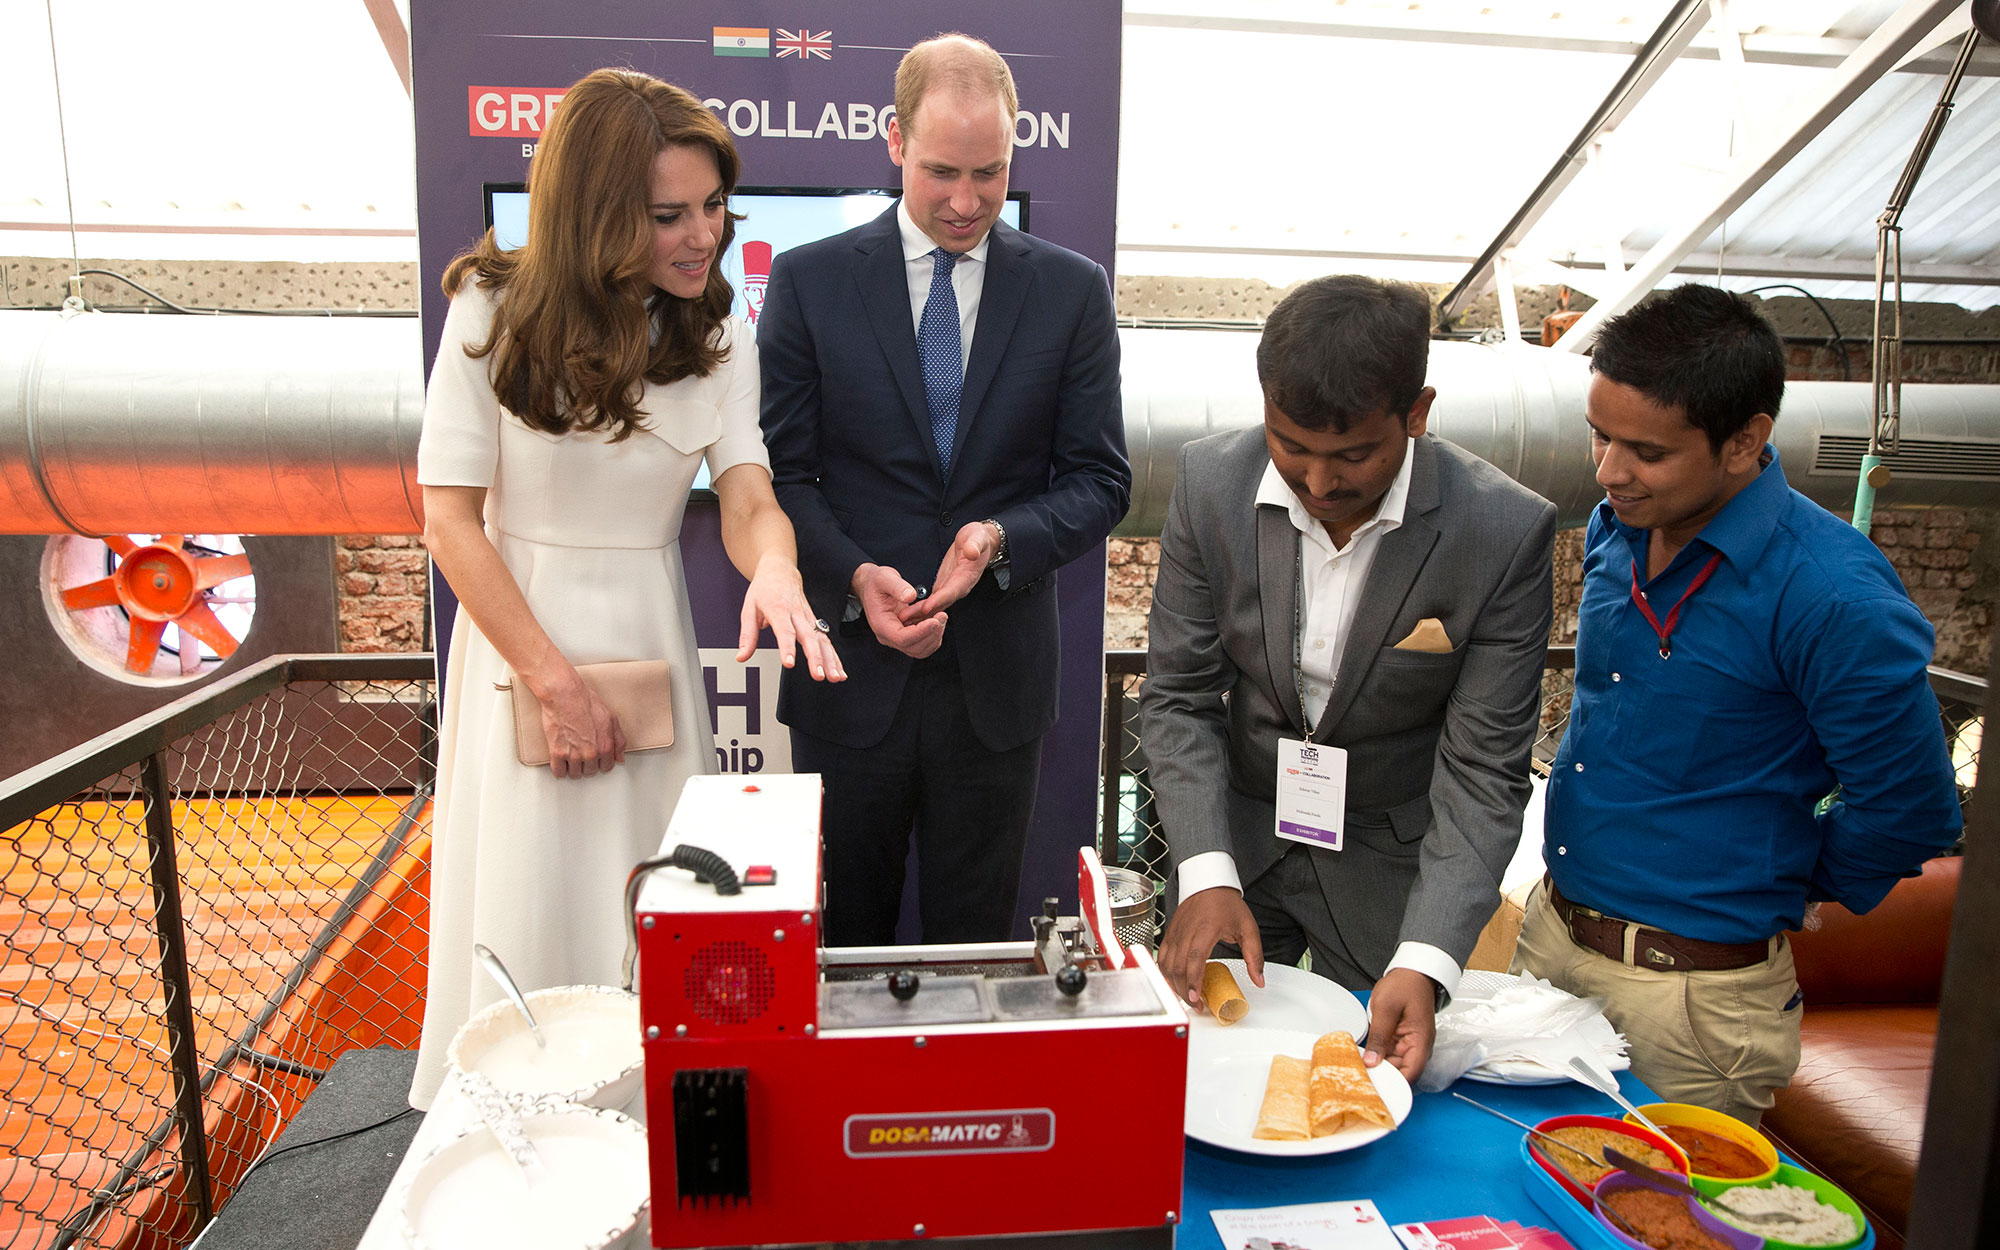 Prince William and Kate Middleton Embark on their Royal Tour of India and Bhutan: Cooking up a storm